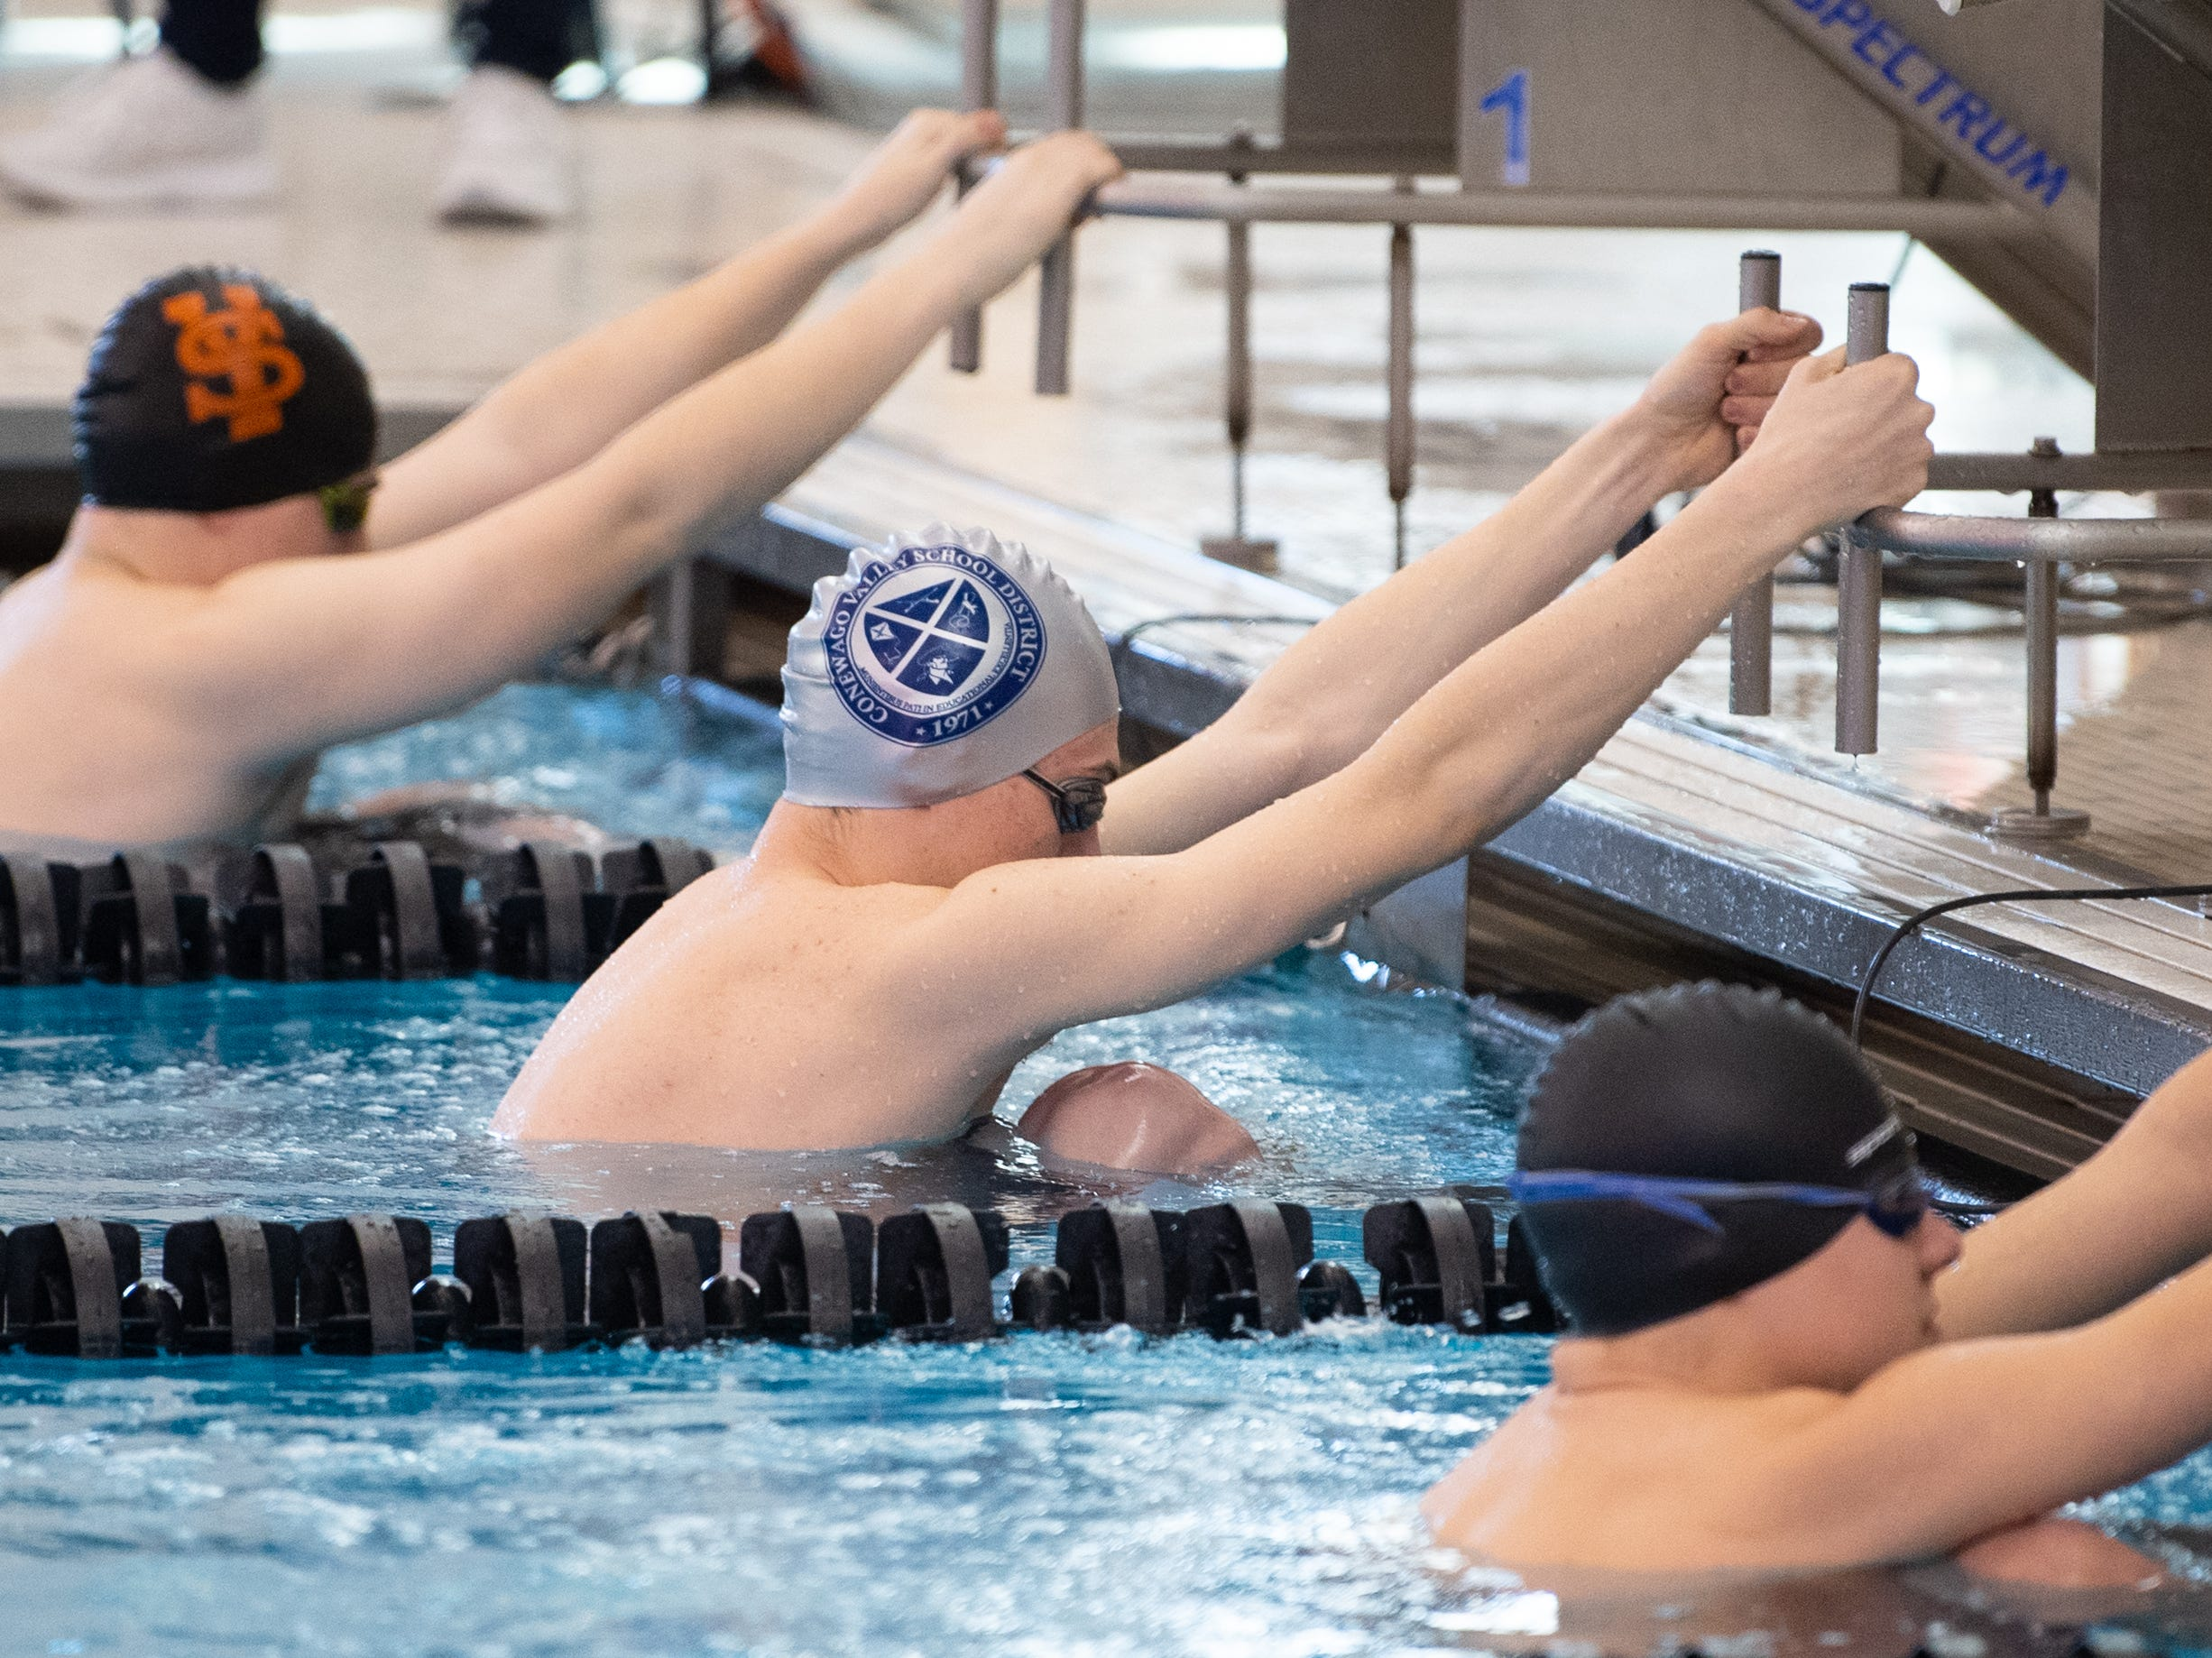 All competitors wait for the starting sound in the Boys 100 Yard Backstroke during the 2019 YAIAA Swimming and Diving Championships at Central York High School, February 9, 2019.